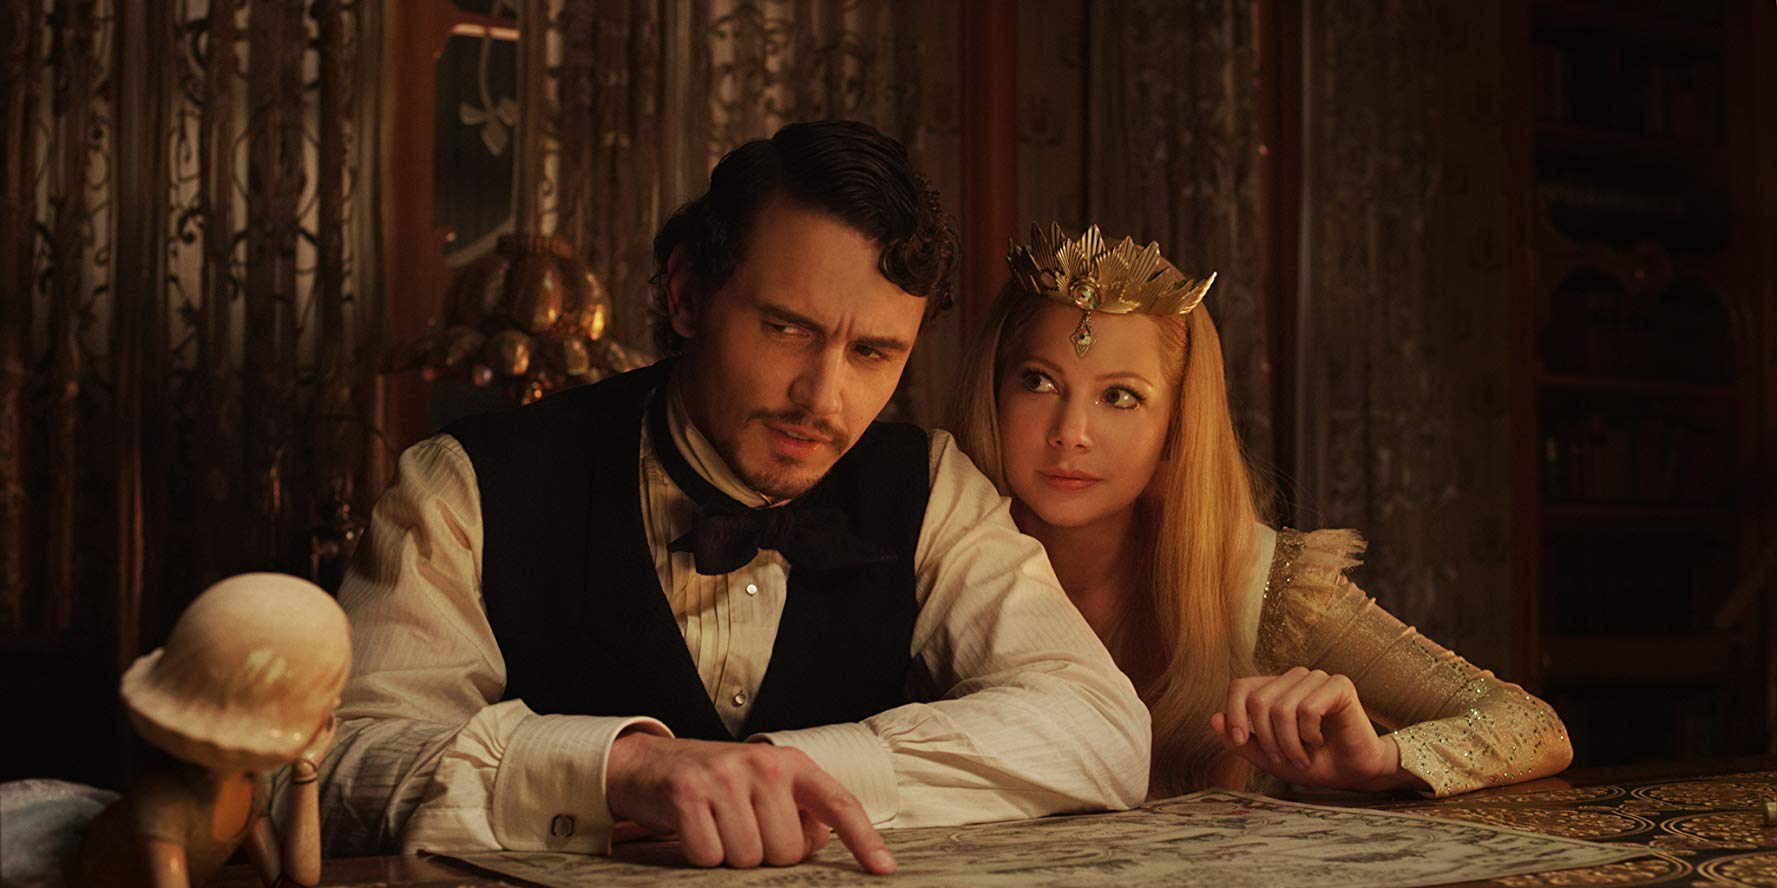 Oz (James Franco), Glinda (Michelle Williams) and the china doll girl in Oz: The Great and Powerful (2013)